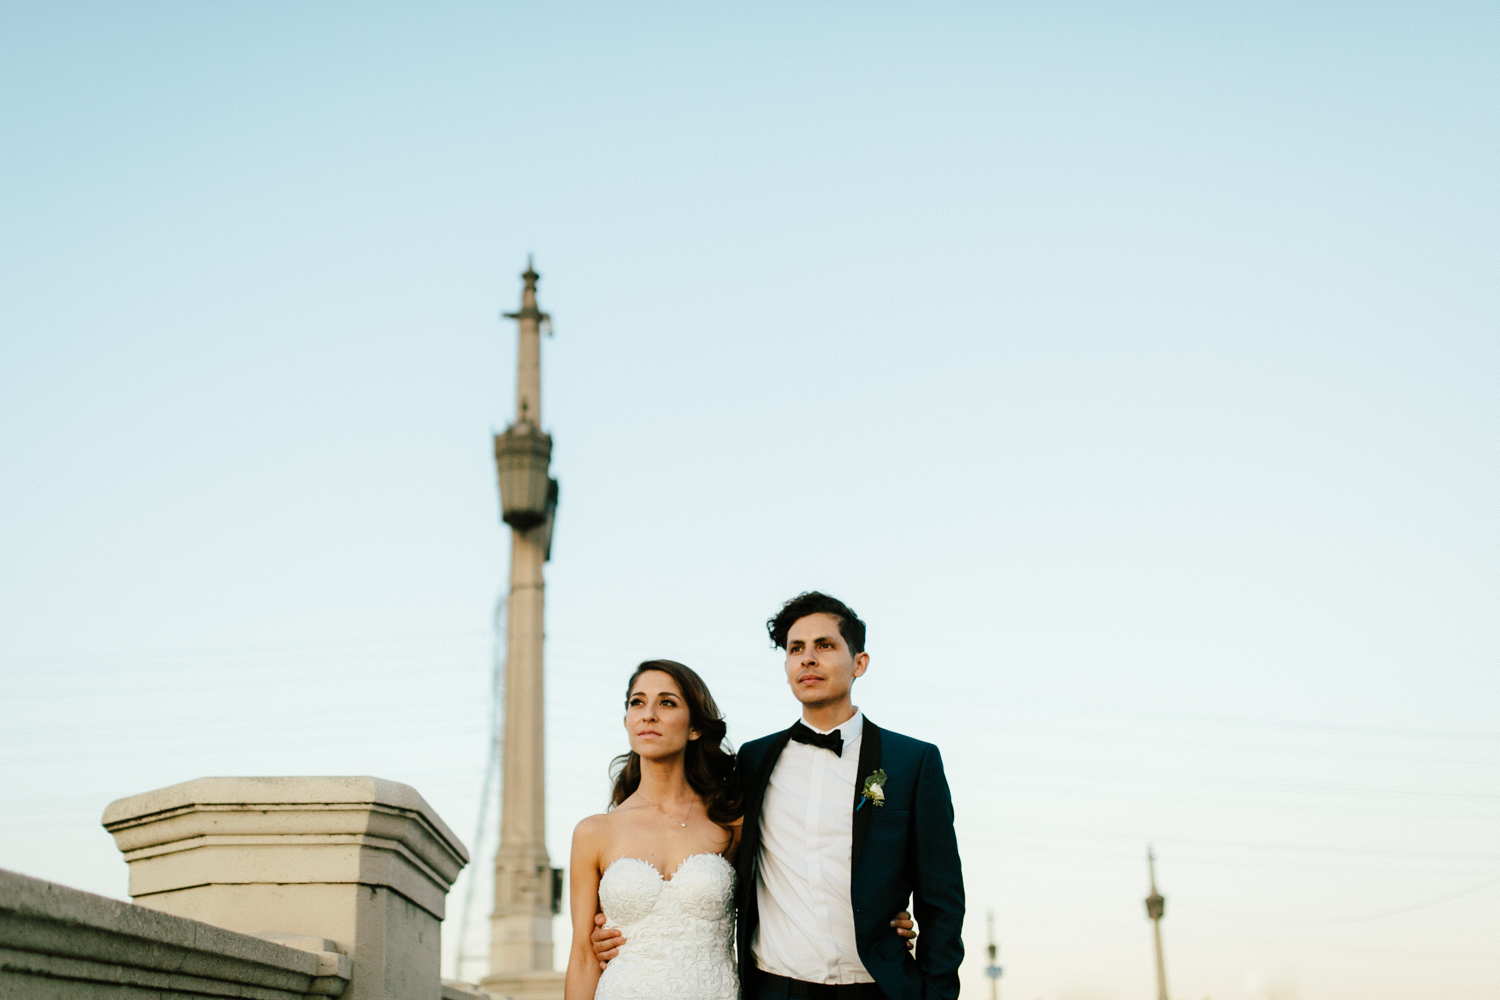 Los Angeles Wedding Photographer, Ace Hotel, Millwick Wedding - The Gathering Season x weareleoandkat 090.JPG